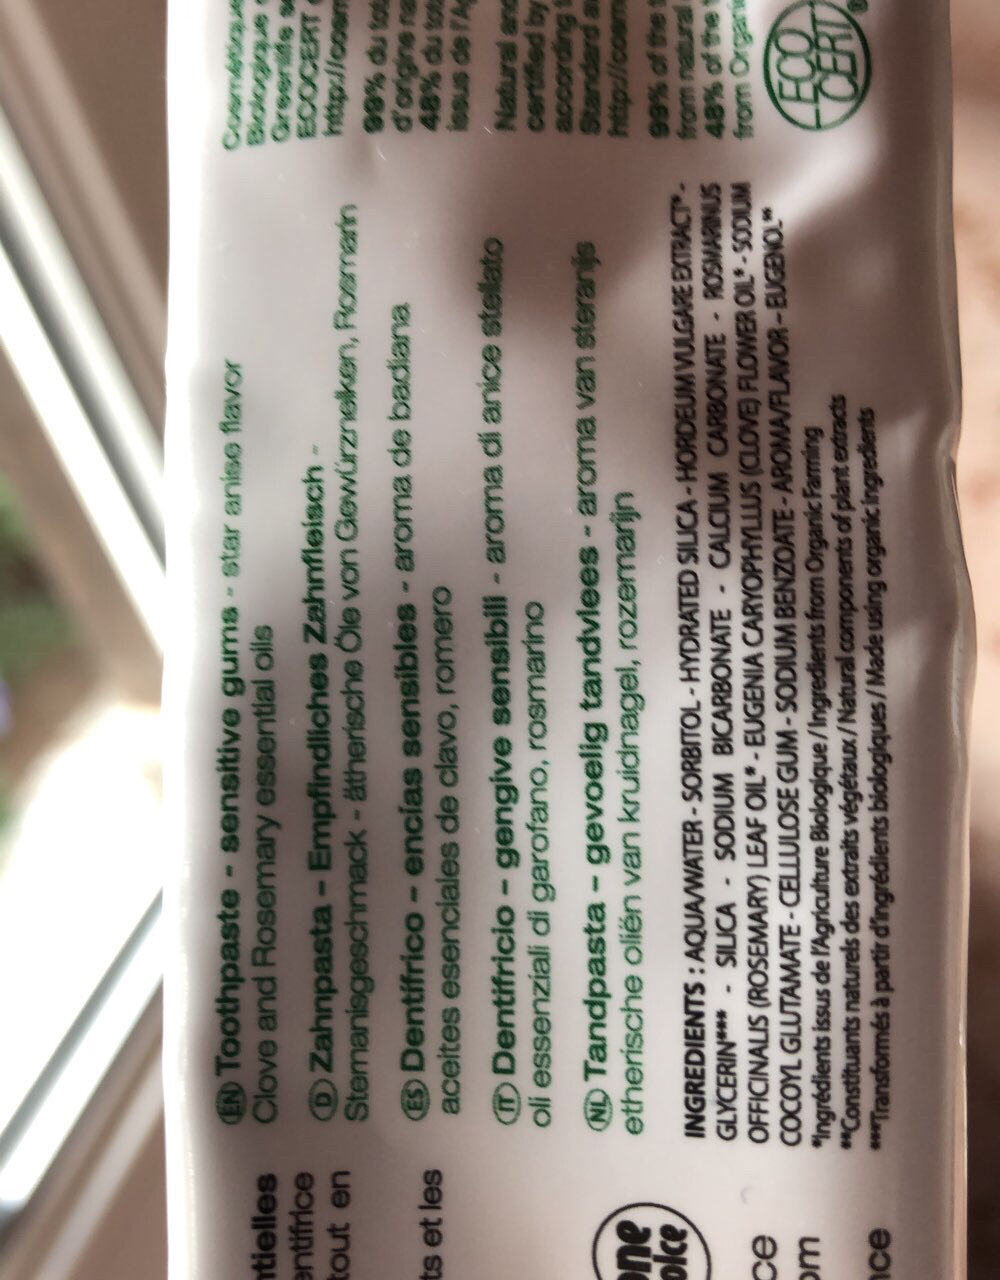 Dentifrice gencives sensibles - Ingredients